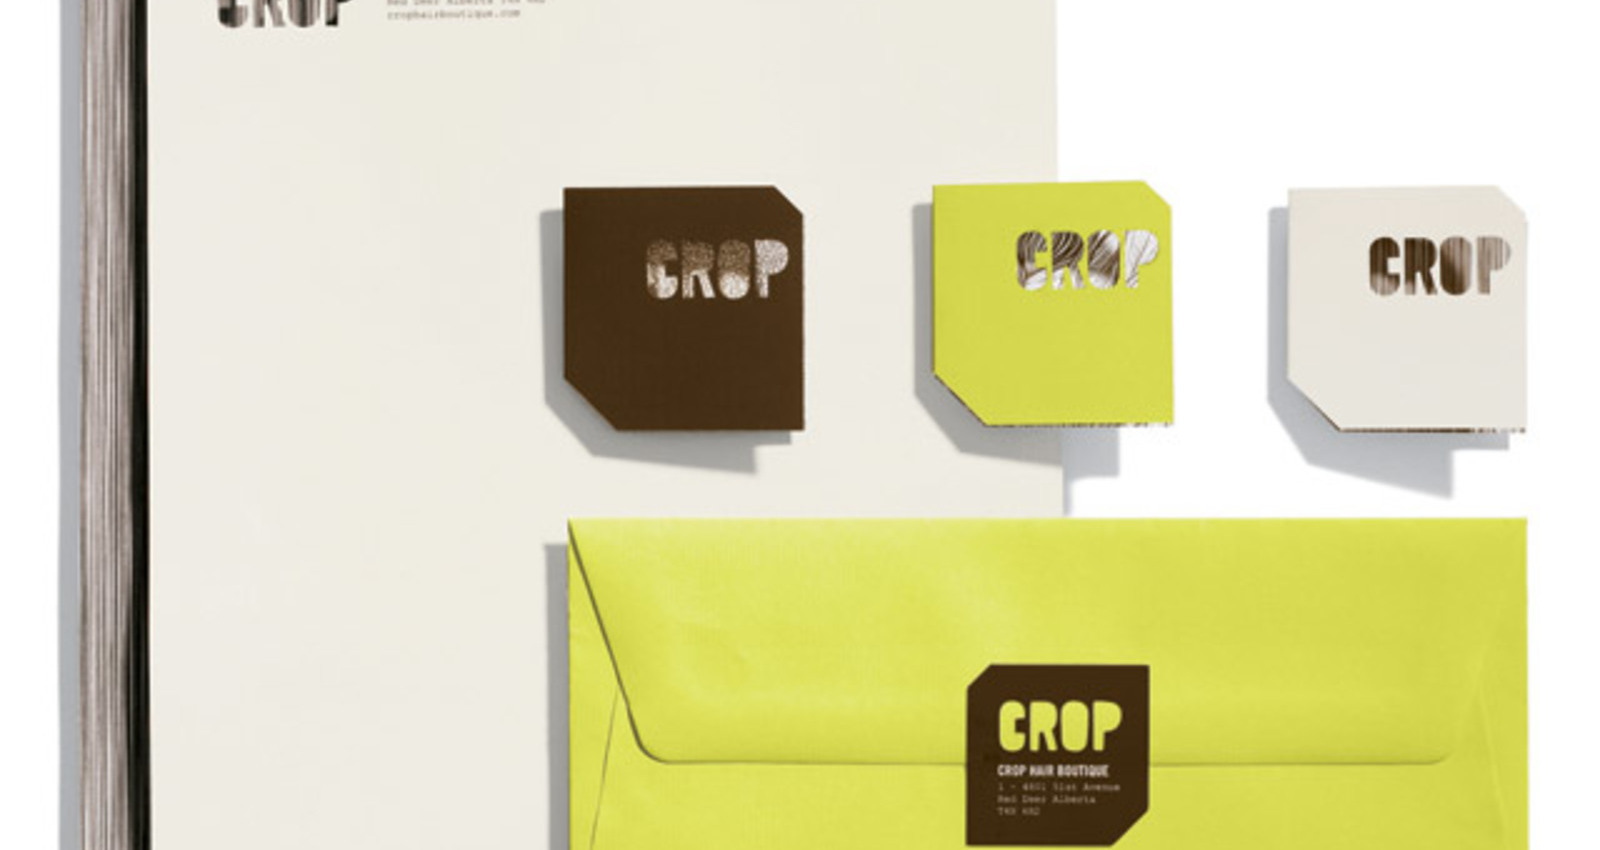 Crop Hair Boutique Identity